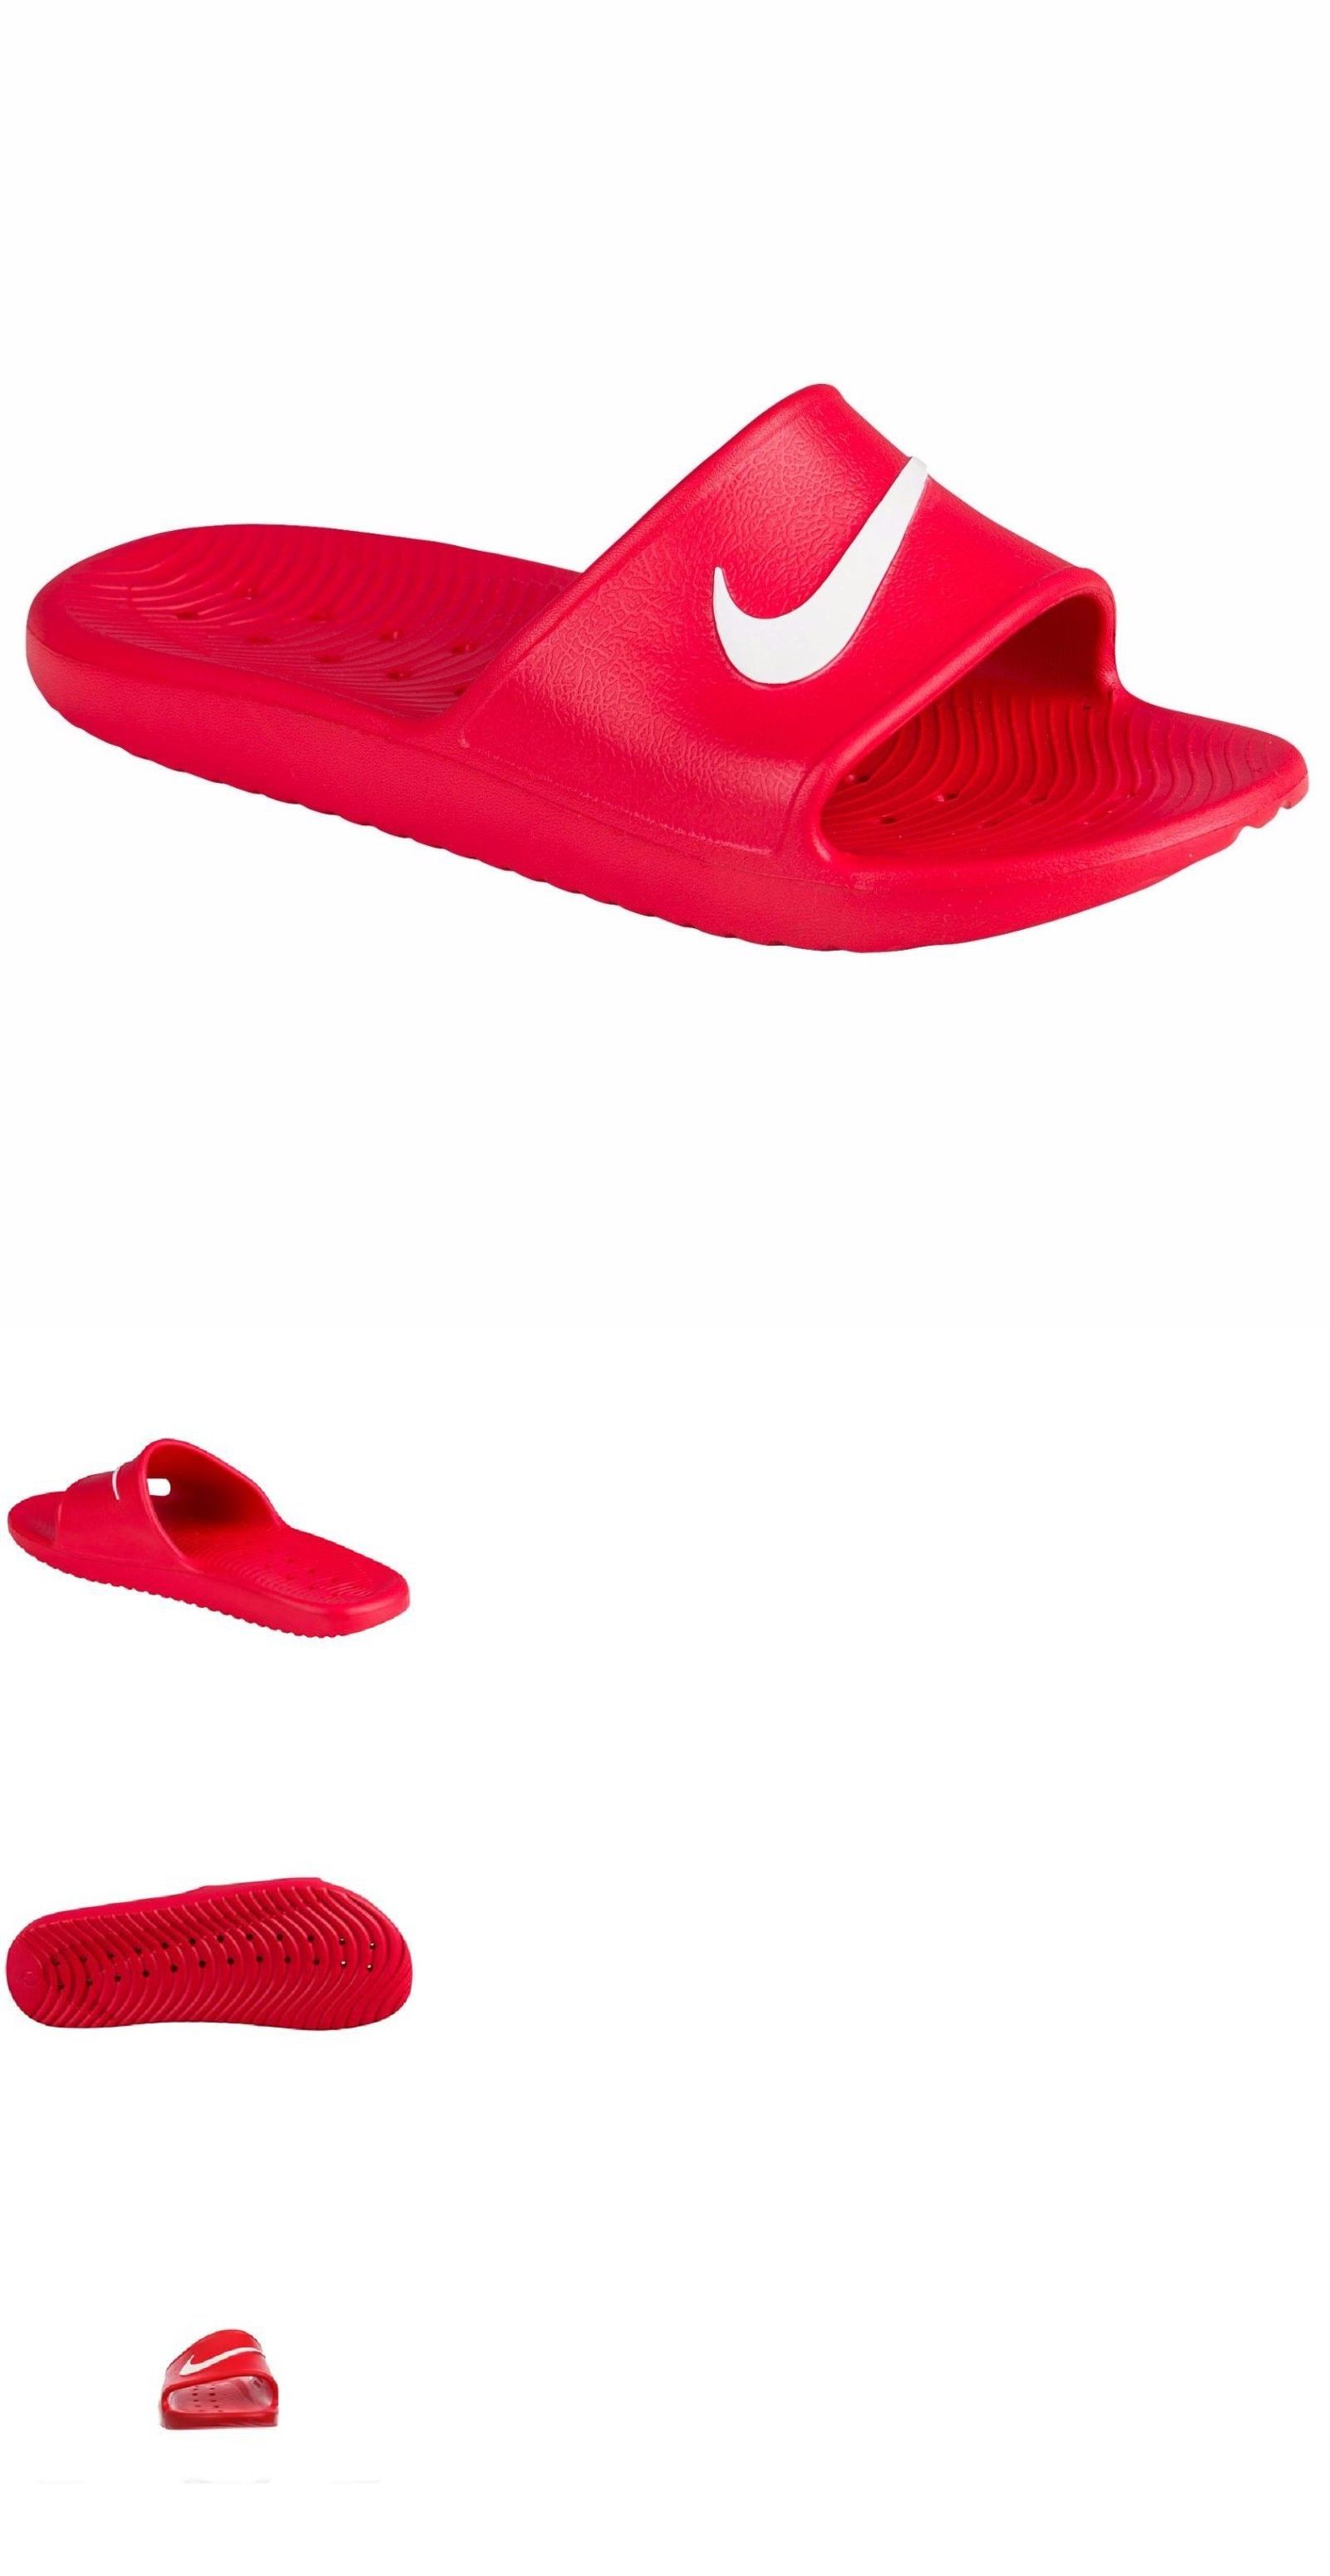 34c5bd94e Sandals 11504  Nike Kawa Shower Men S Slide Red White Slipper 832528 600 Free  Shipping -  BUY IT NOW ONLY   27.95 on  eBay  sandals  shower  slide  white  ...